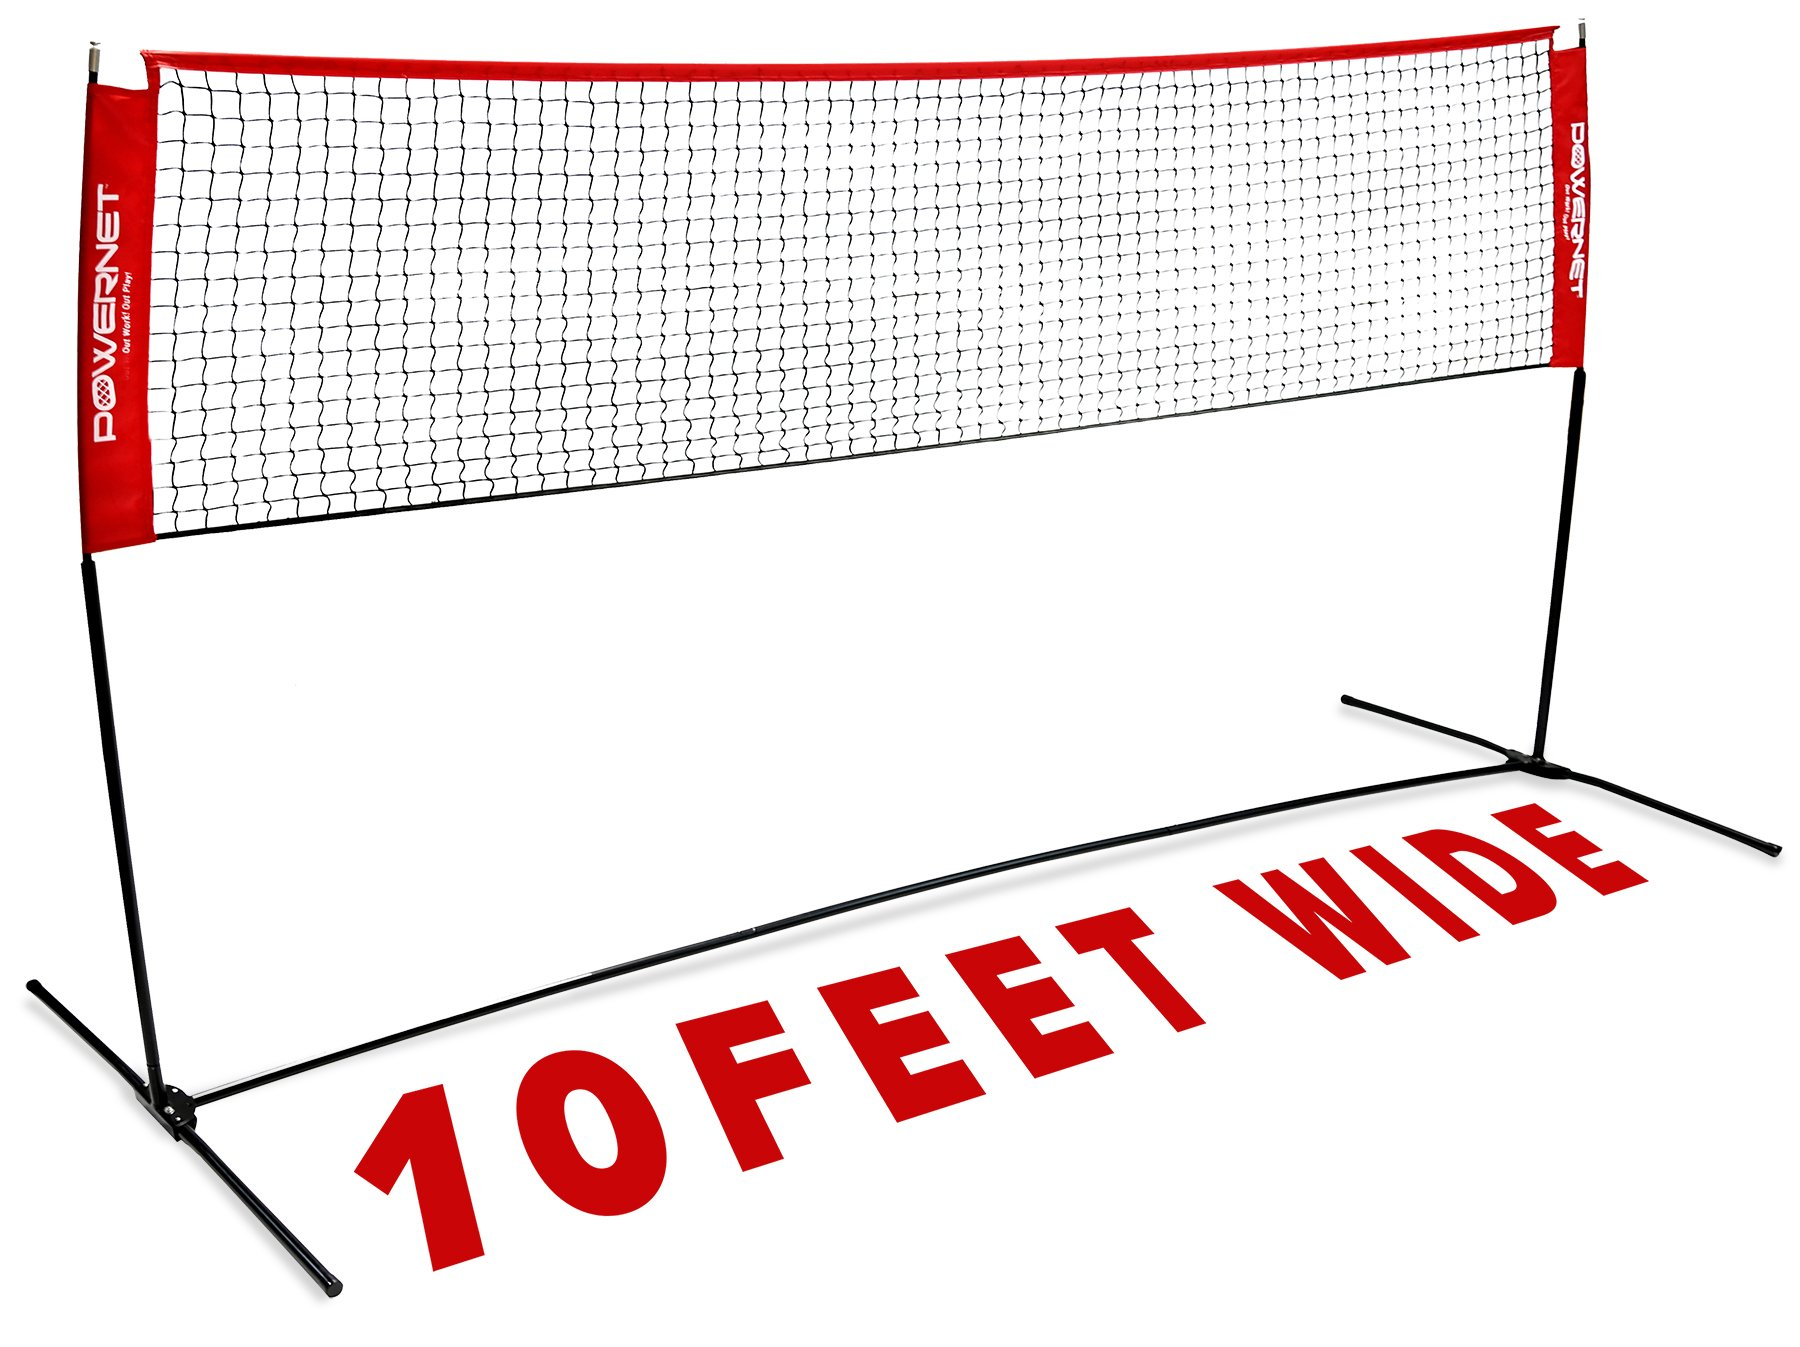 PowerNet Portable Badminton, Tennis, Volleyball, Pickleball Net | 10ft Wide | 3ft to 5ft Adjustable Height | Net and Frame | Driveway, Indoor, Outdoor, Beach, Street, Backyard | EZ Setup Collapsible